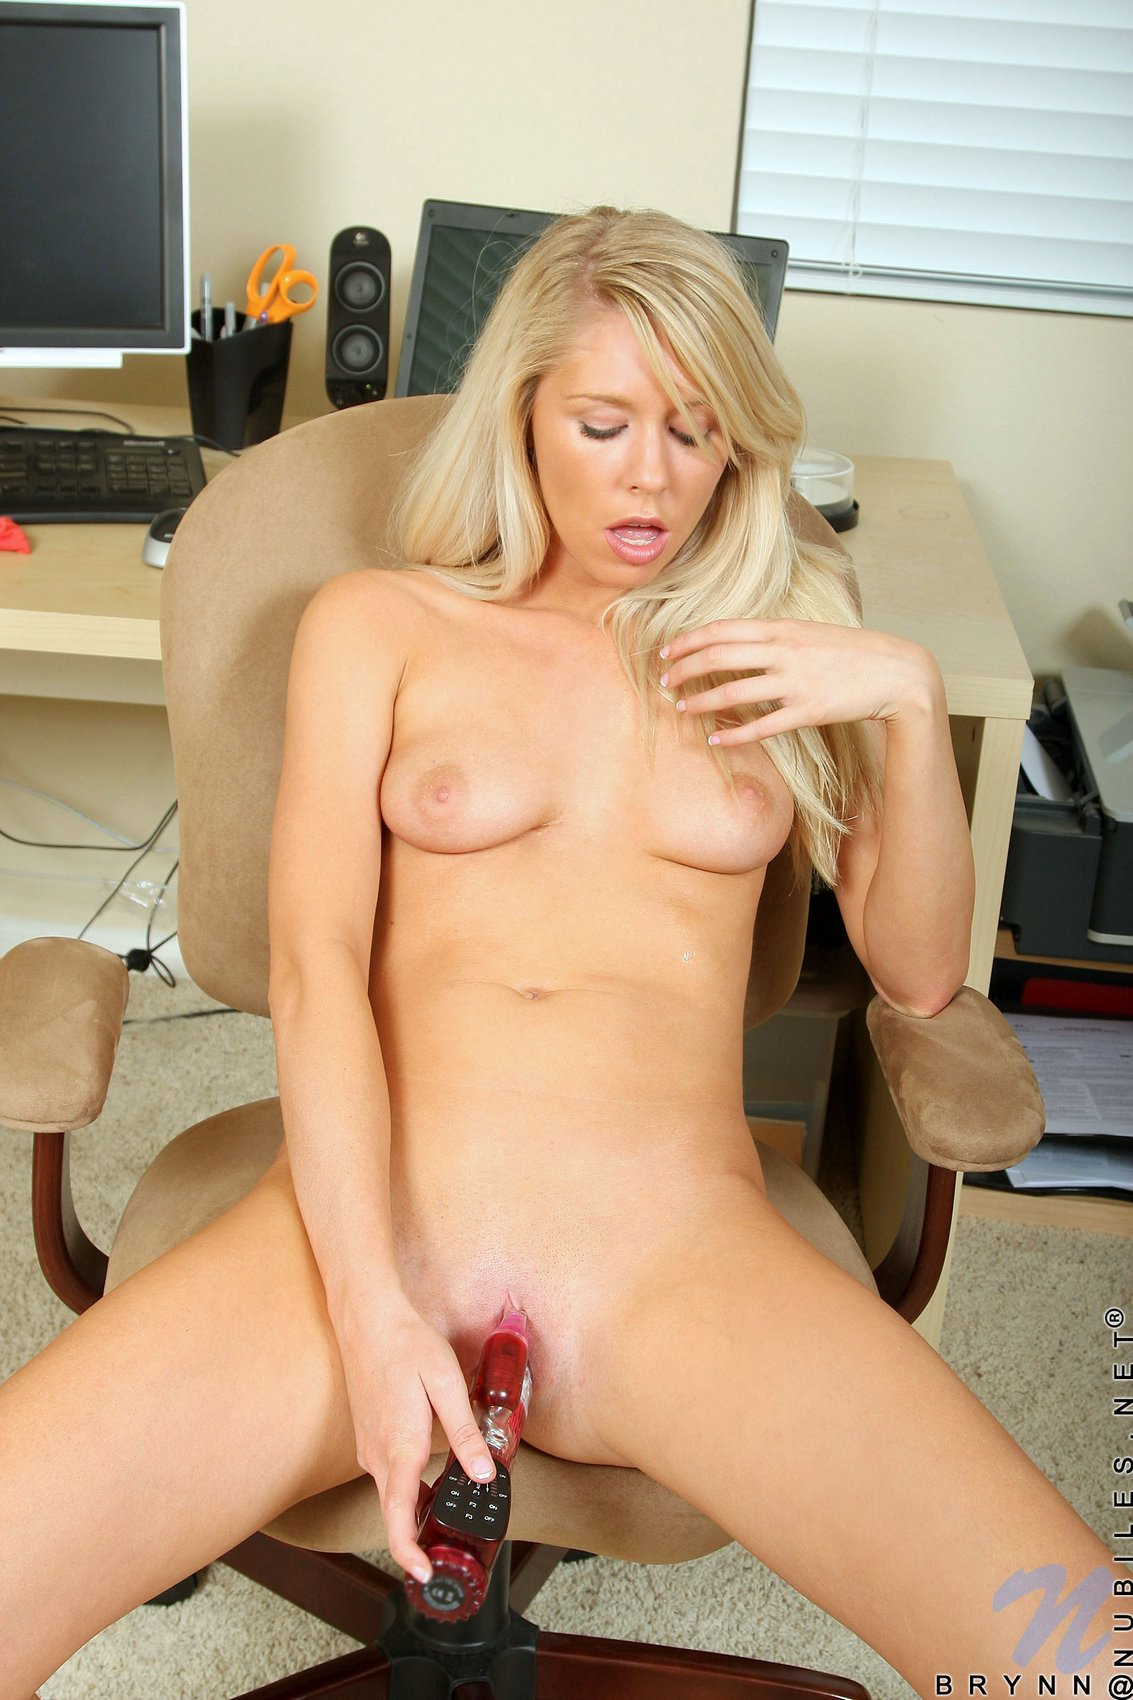 Brynn tyler porn star where learn